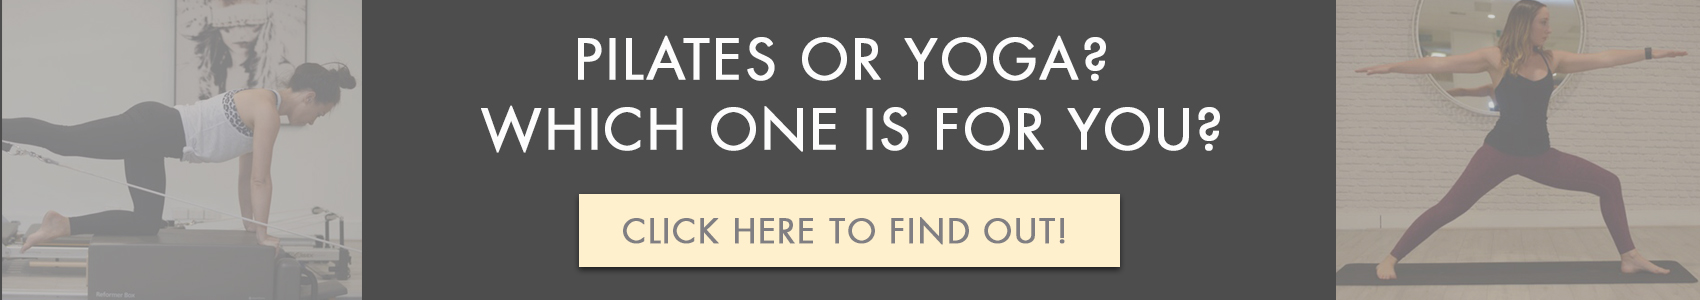 Pilates or Yoga Banner.jpg